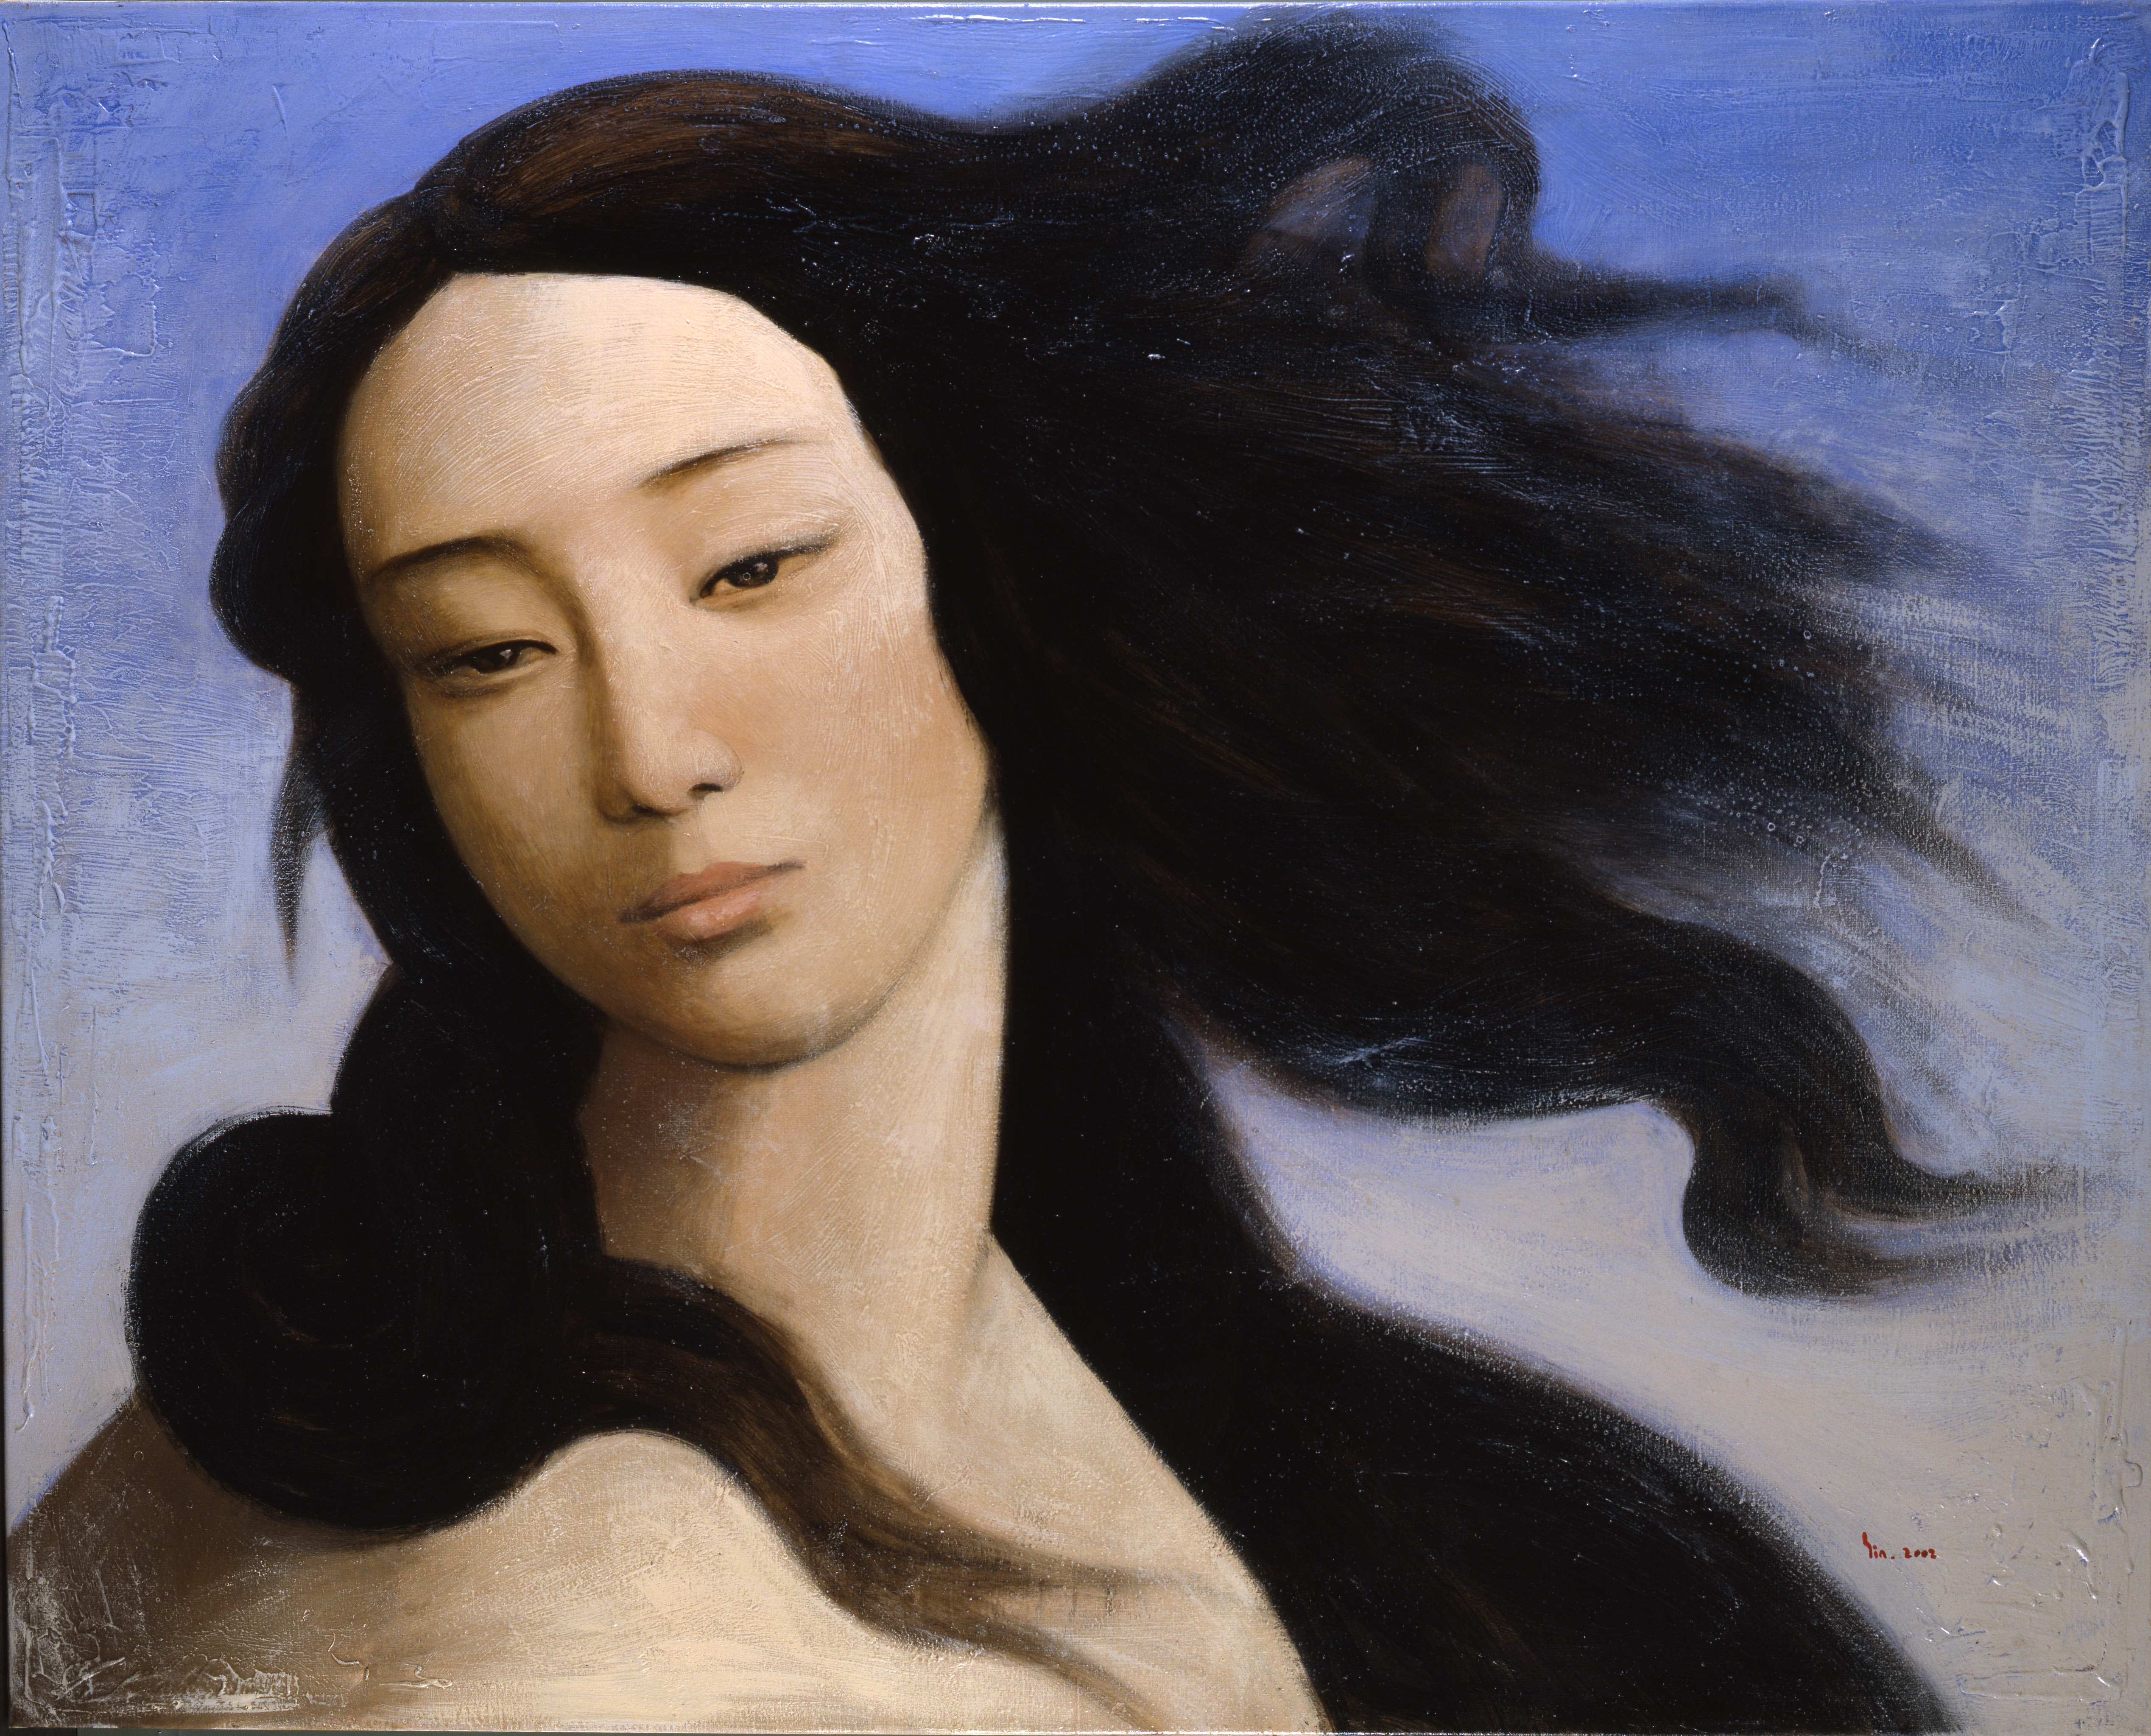 Venus after Botticelli 2008 by Xin Yin